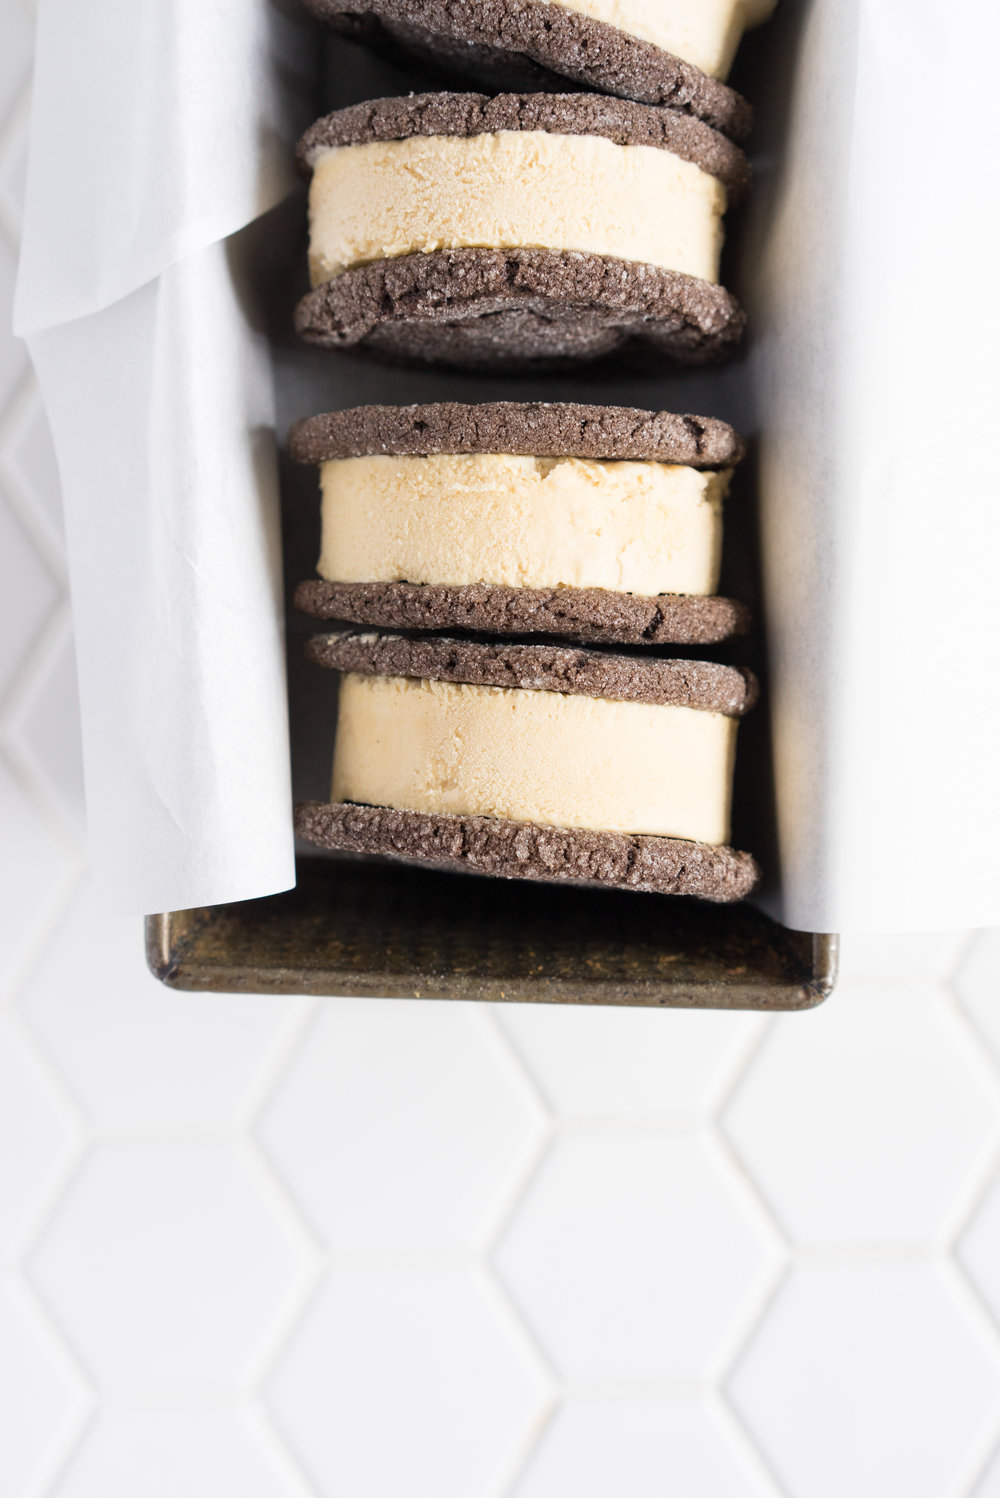 Chocolate earl grey ice cream sandwiches - creamy earl grey ice cream sandwiched between perfectly chewy chocolate sugar cookies. The dessert you never knew you needed. Until now.